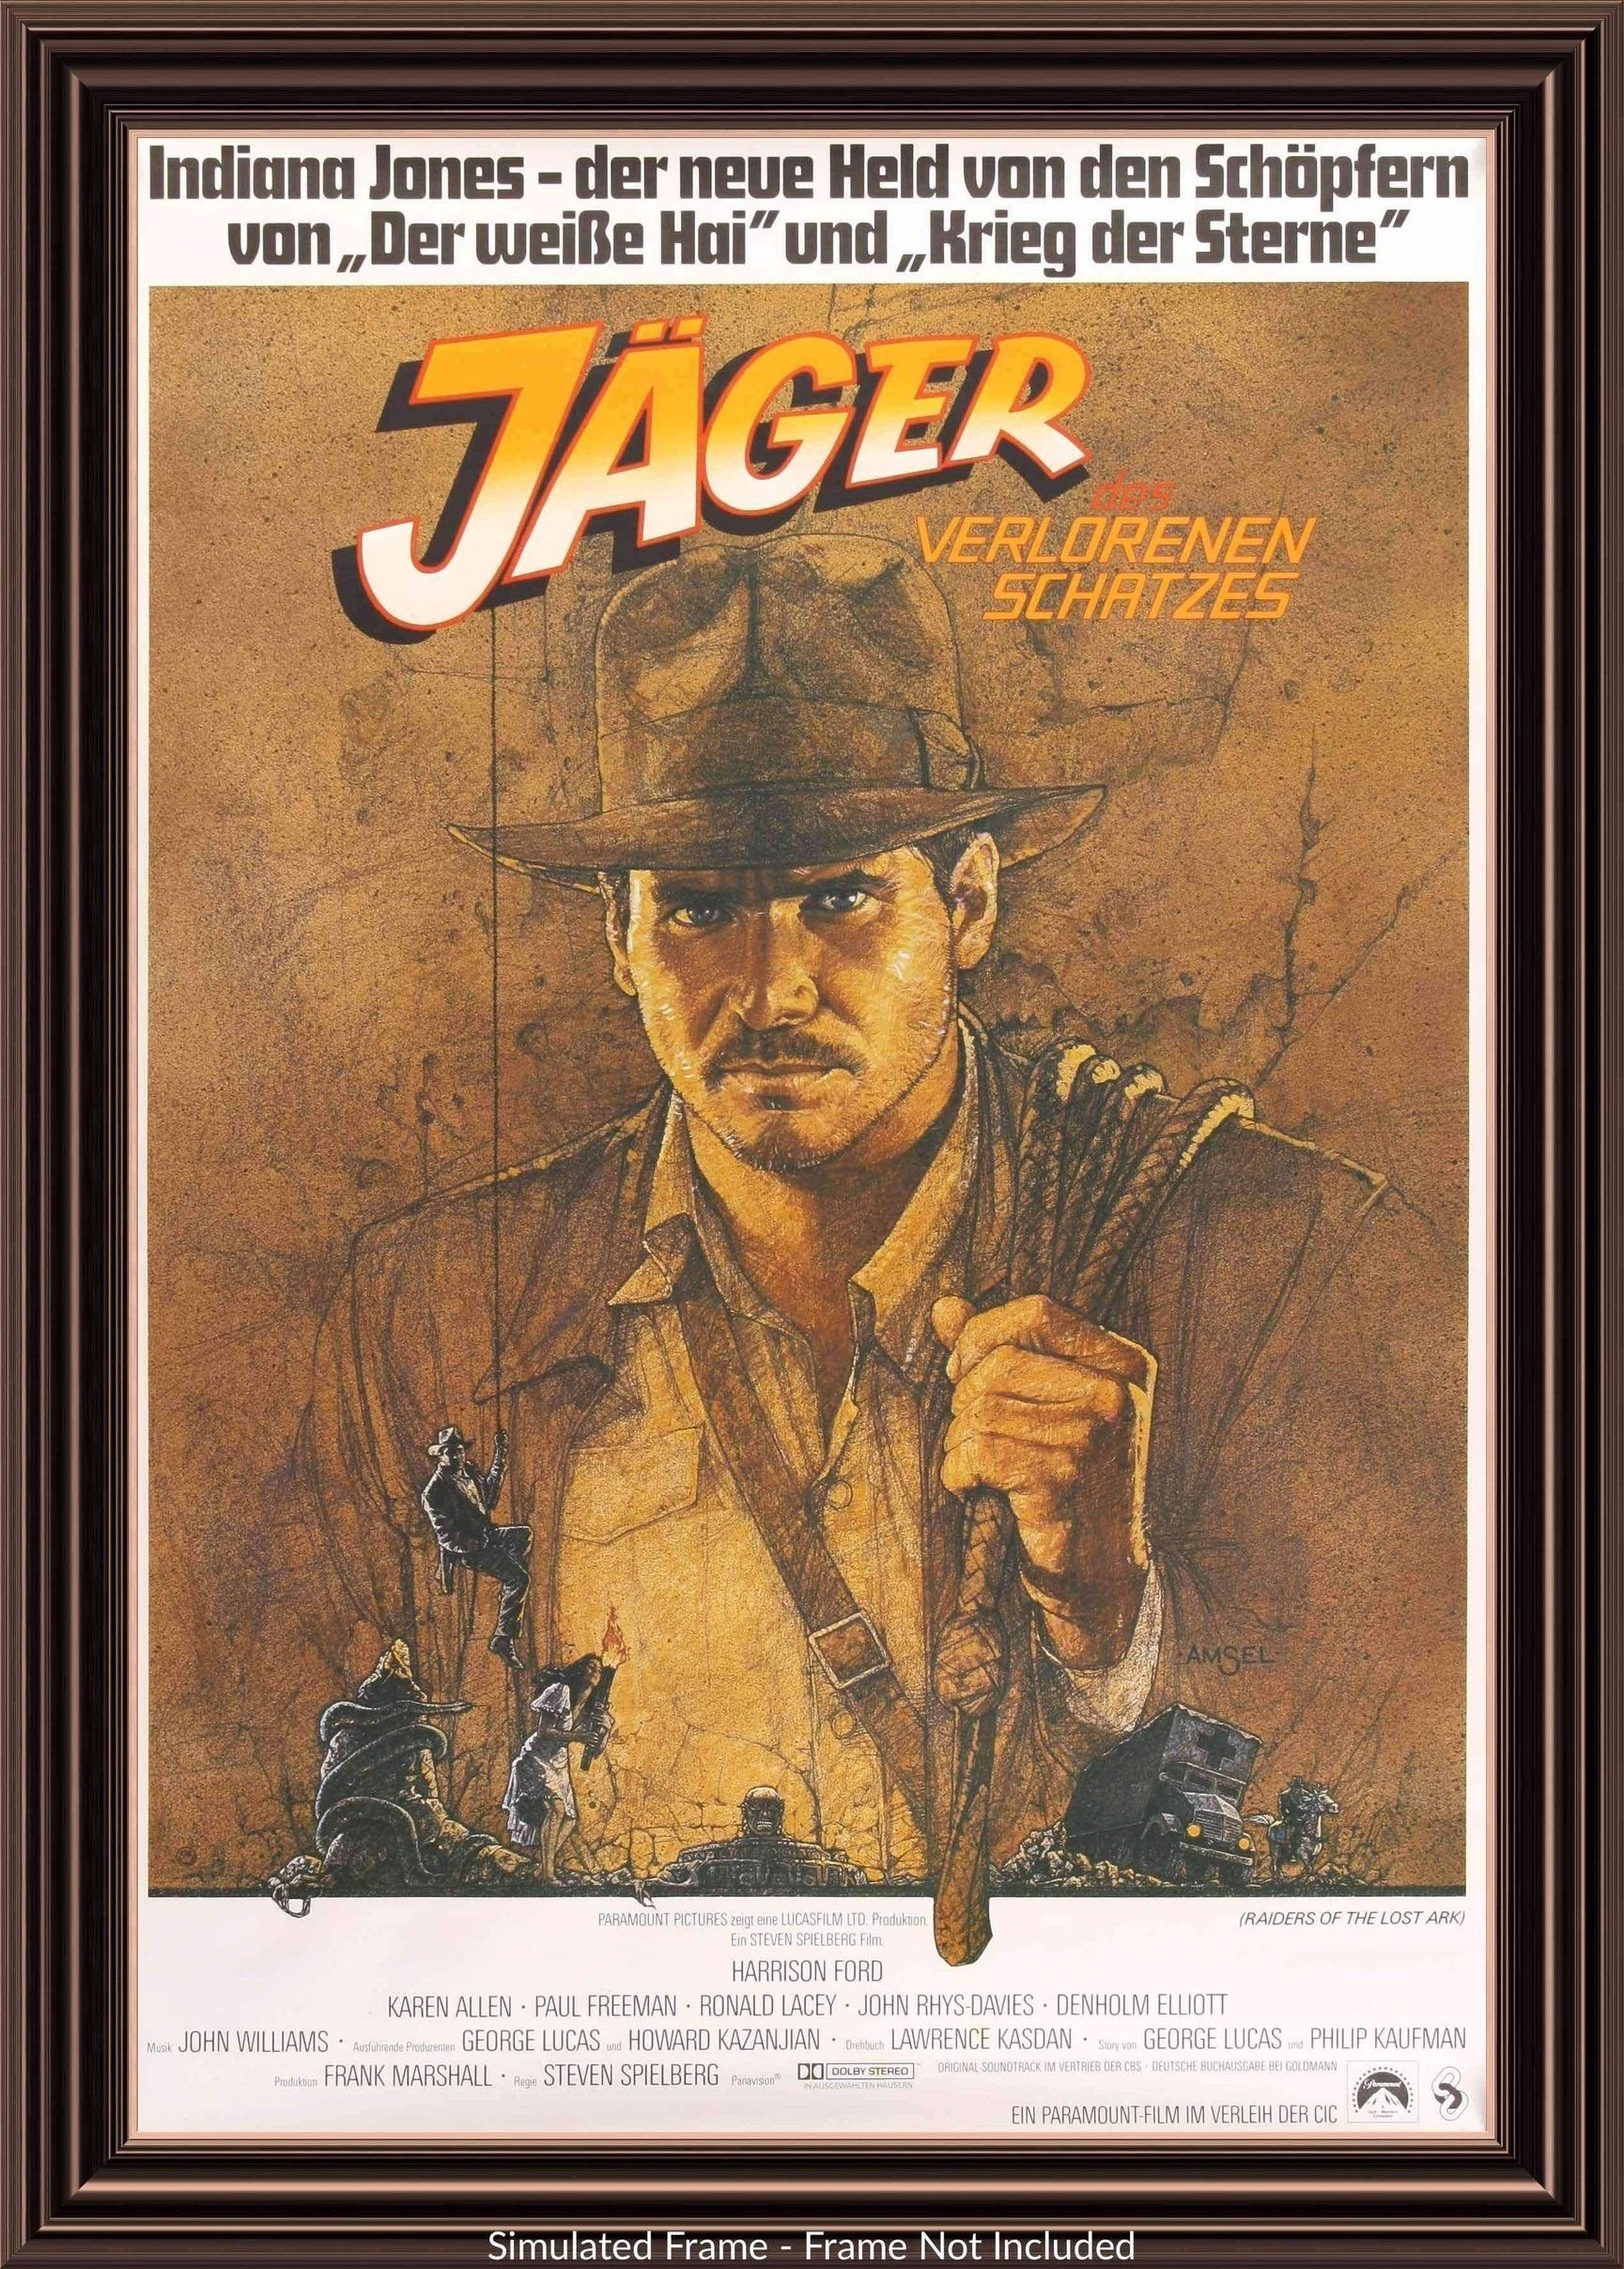 Raiders Of The Lost Ark 1981 In 2021 Indiana Jones Harrison Ford Movie Posters Vintage